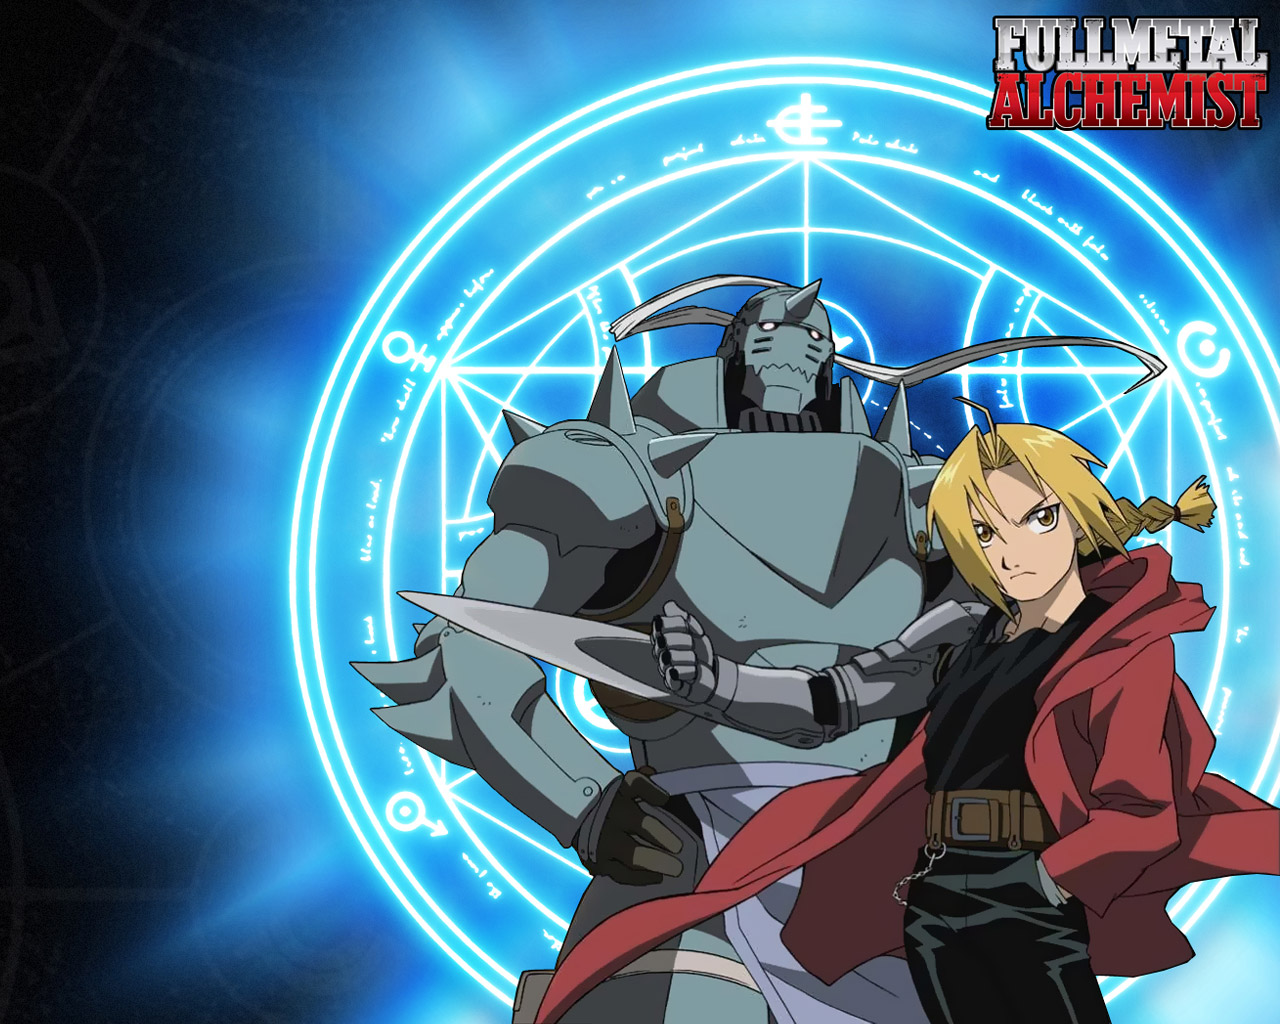 Full Metal Alchemist HD & Widescreen Wallpaper 0.582694963816059